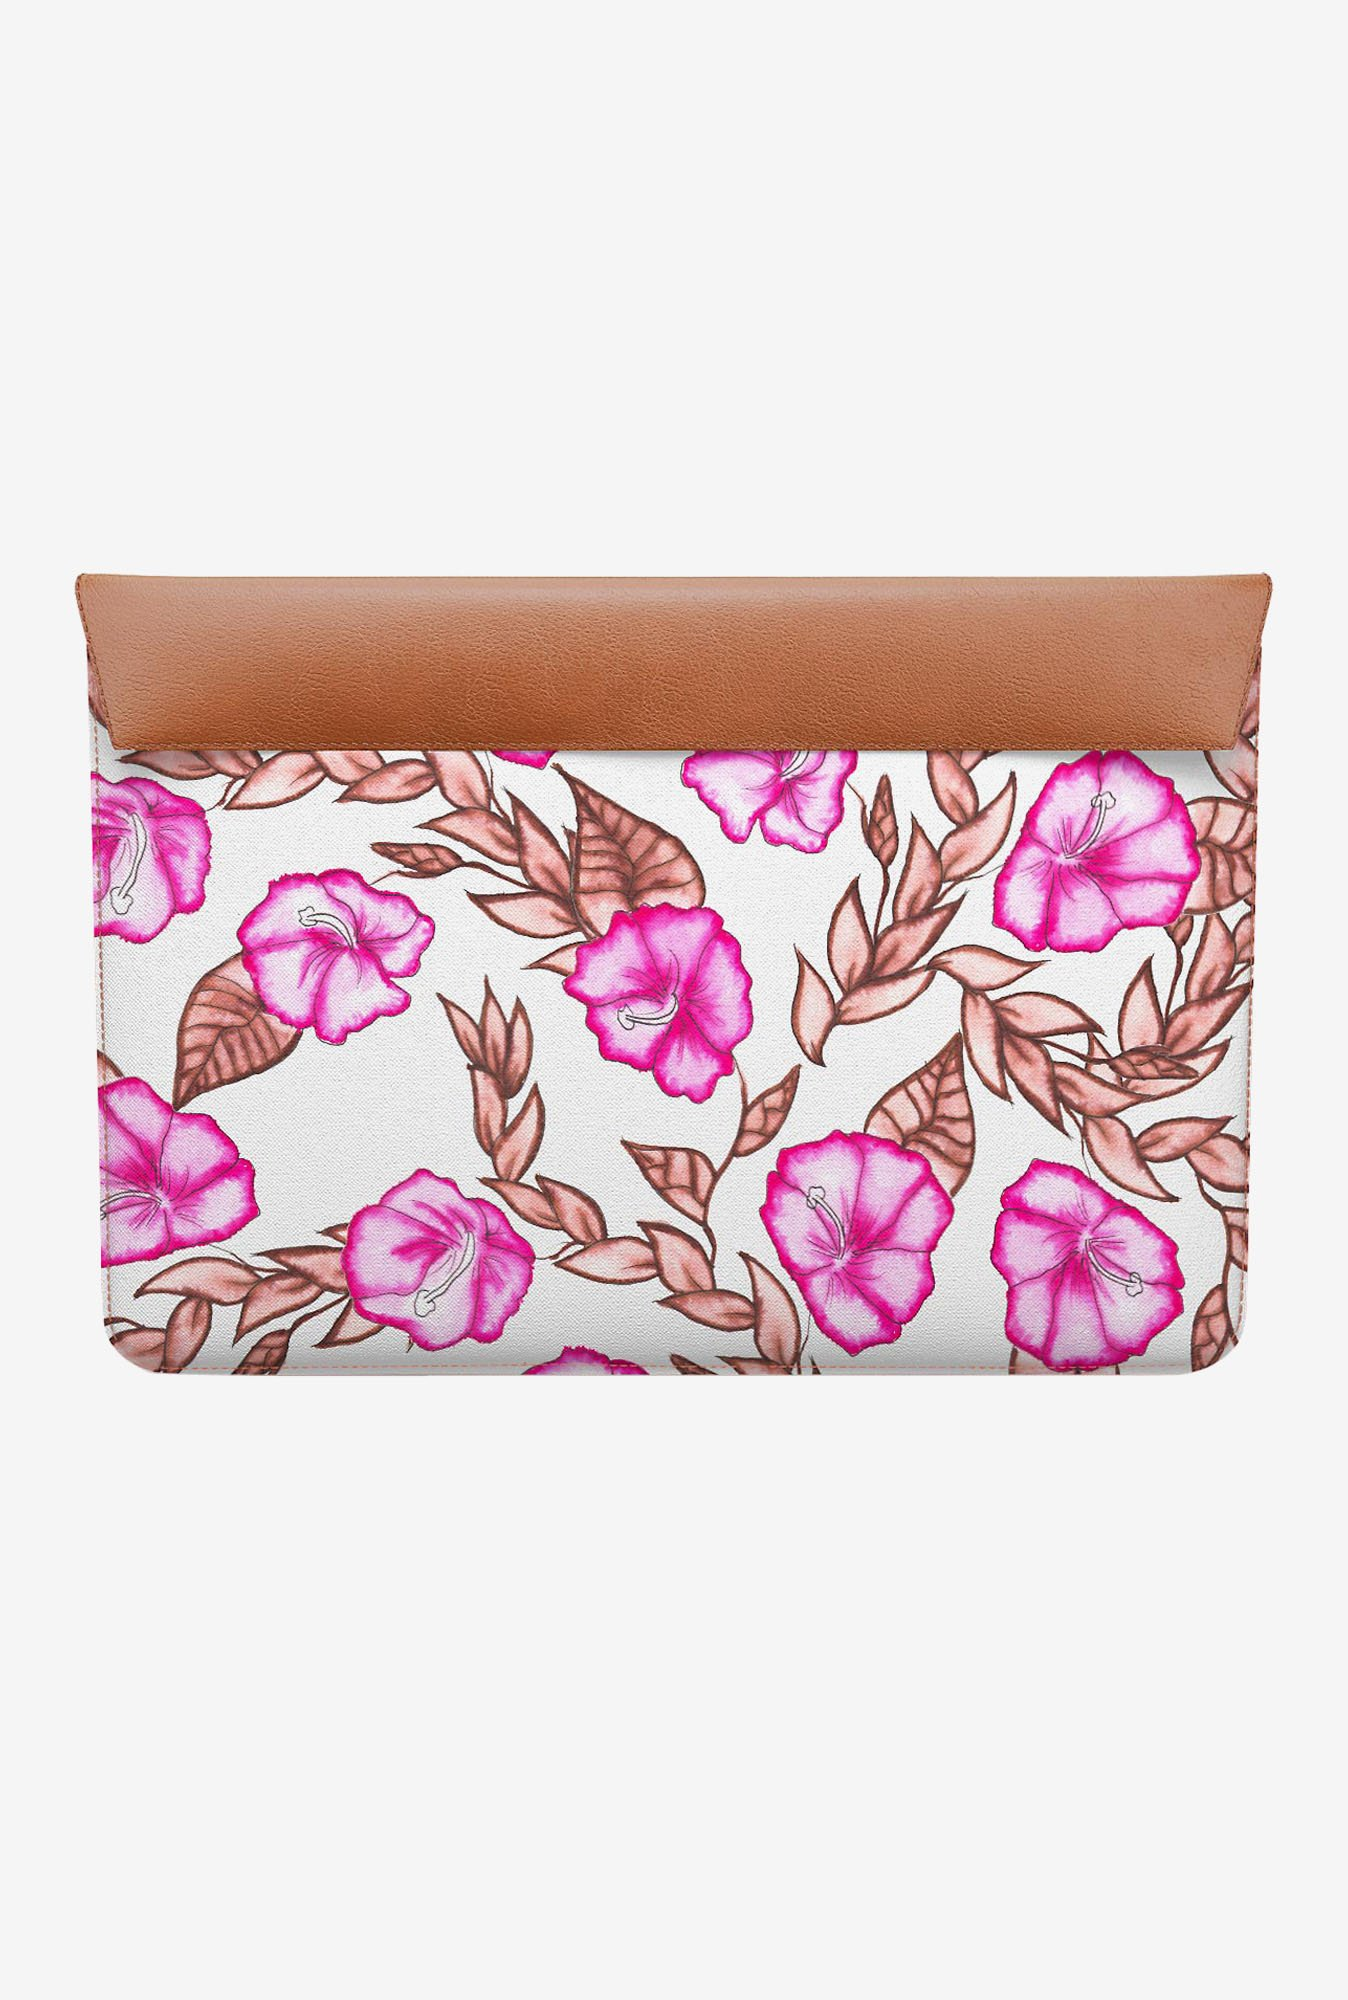 DailyObjects Pink Floral MacBook Pro 15 Envelope Sleeve